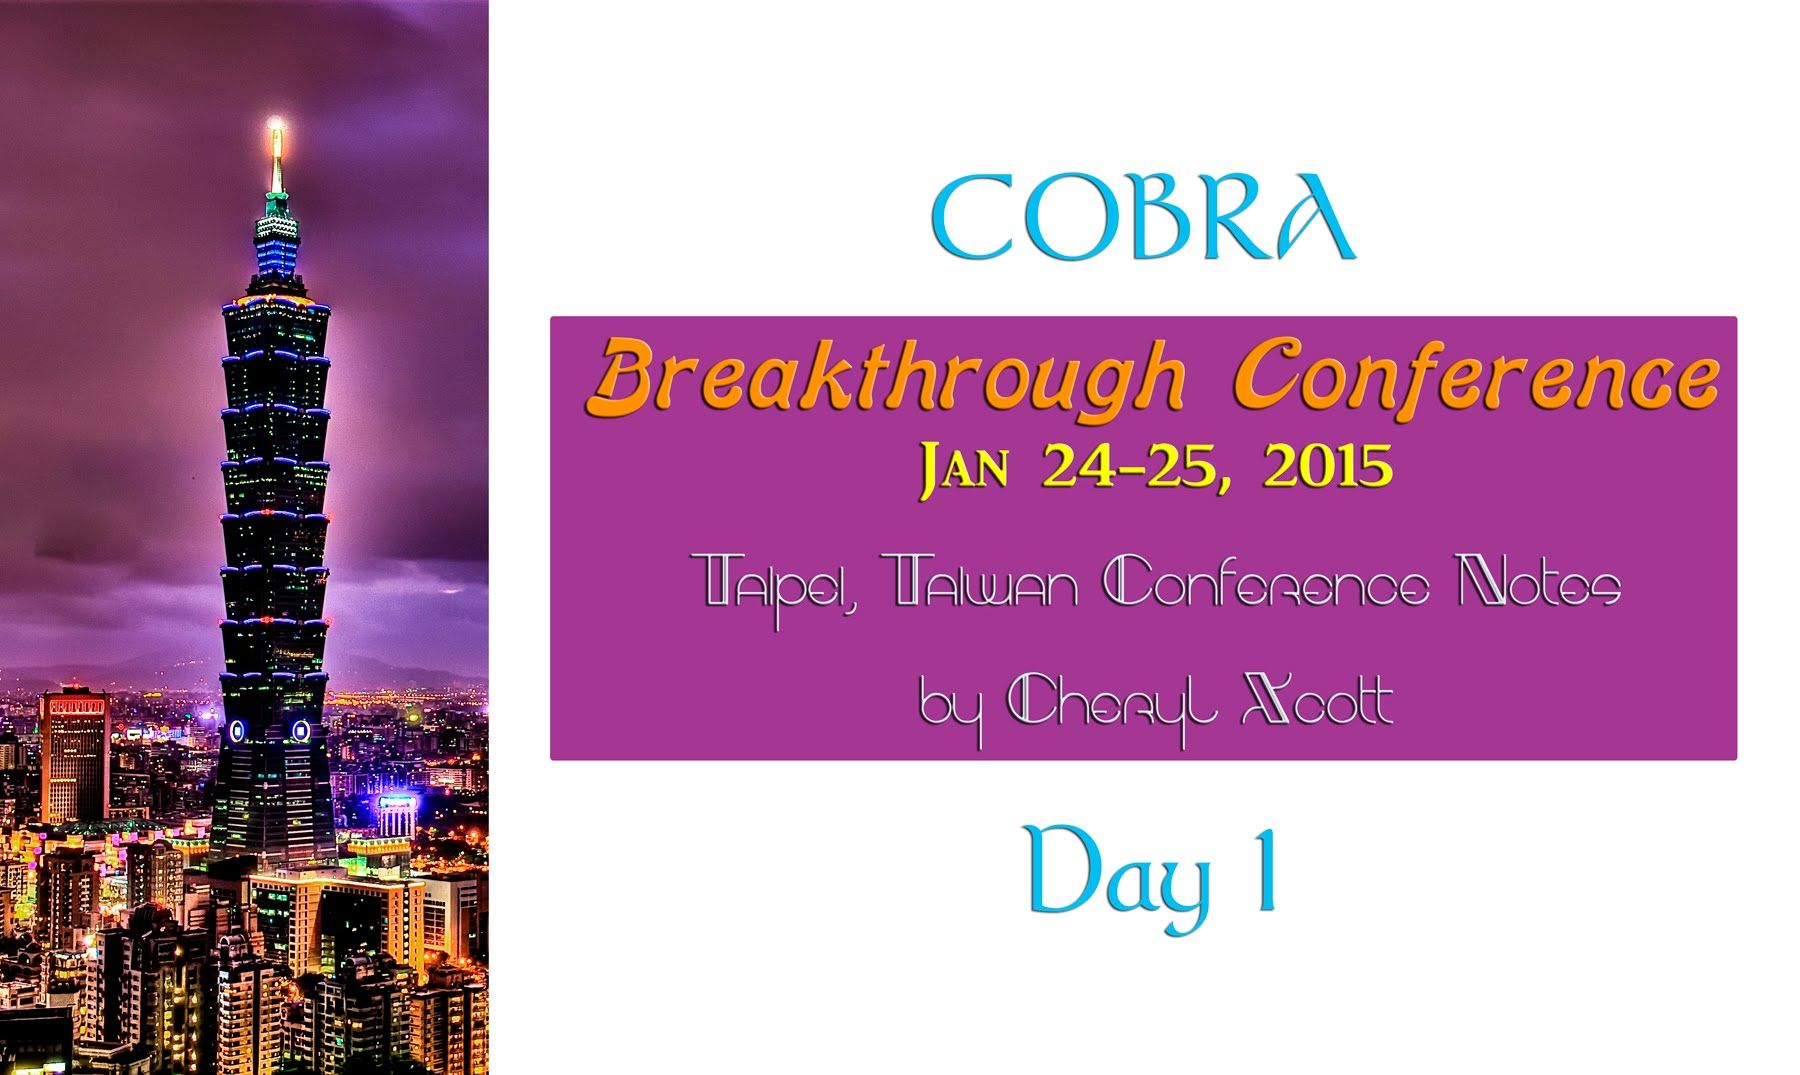 CobraS Breakthrough Conference In Taiwan Day  Of   New Earth